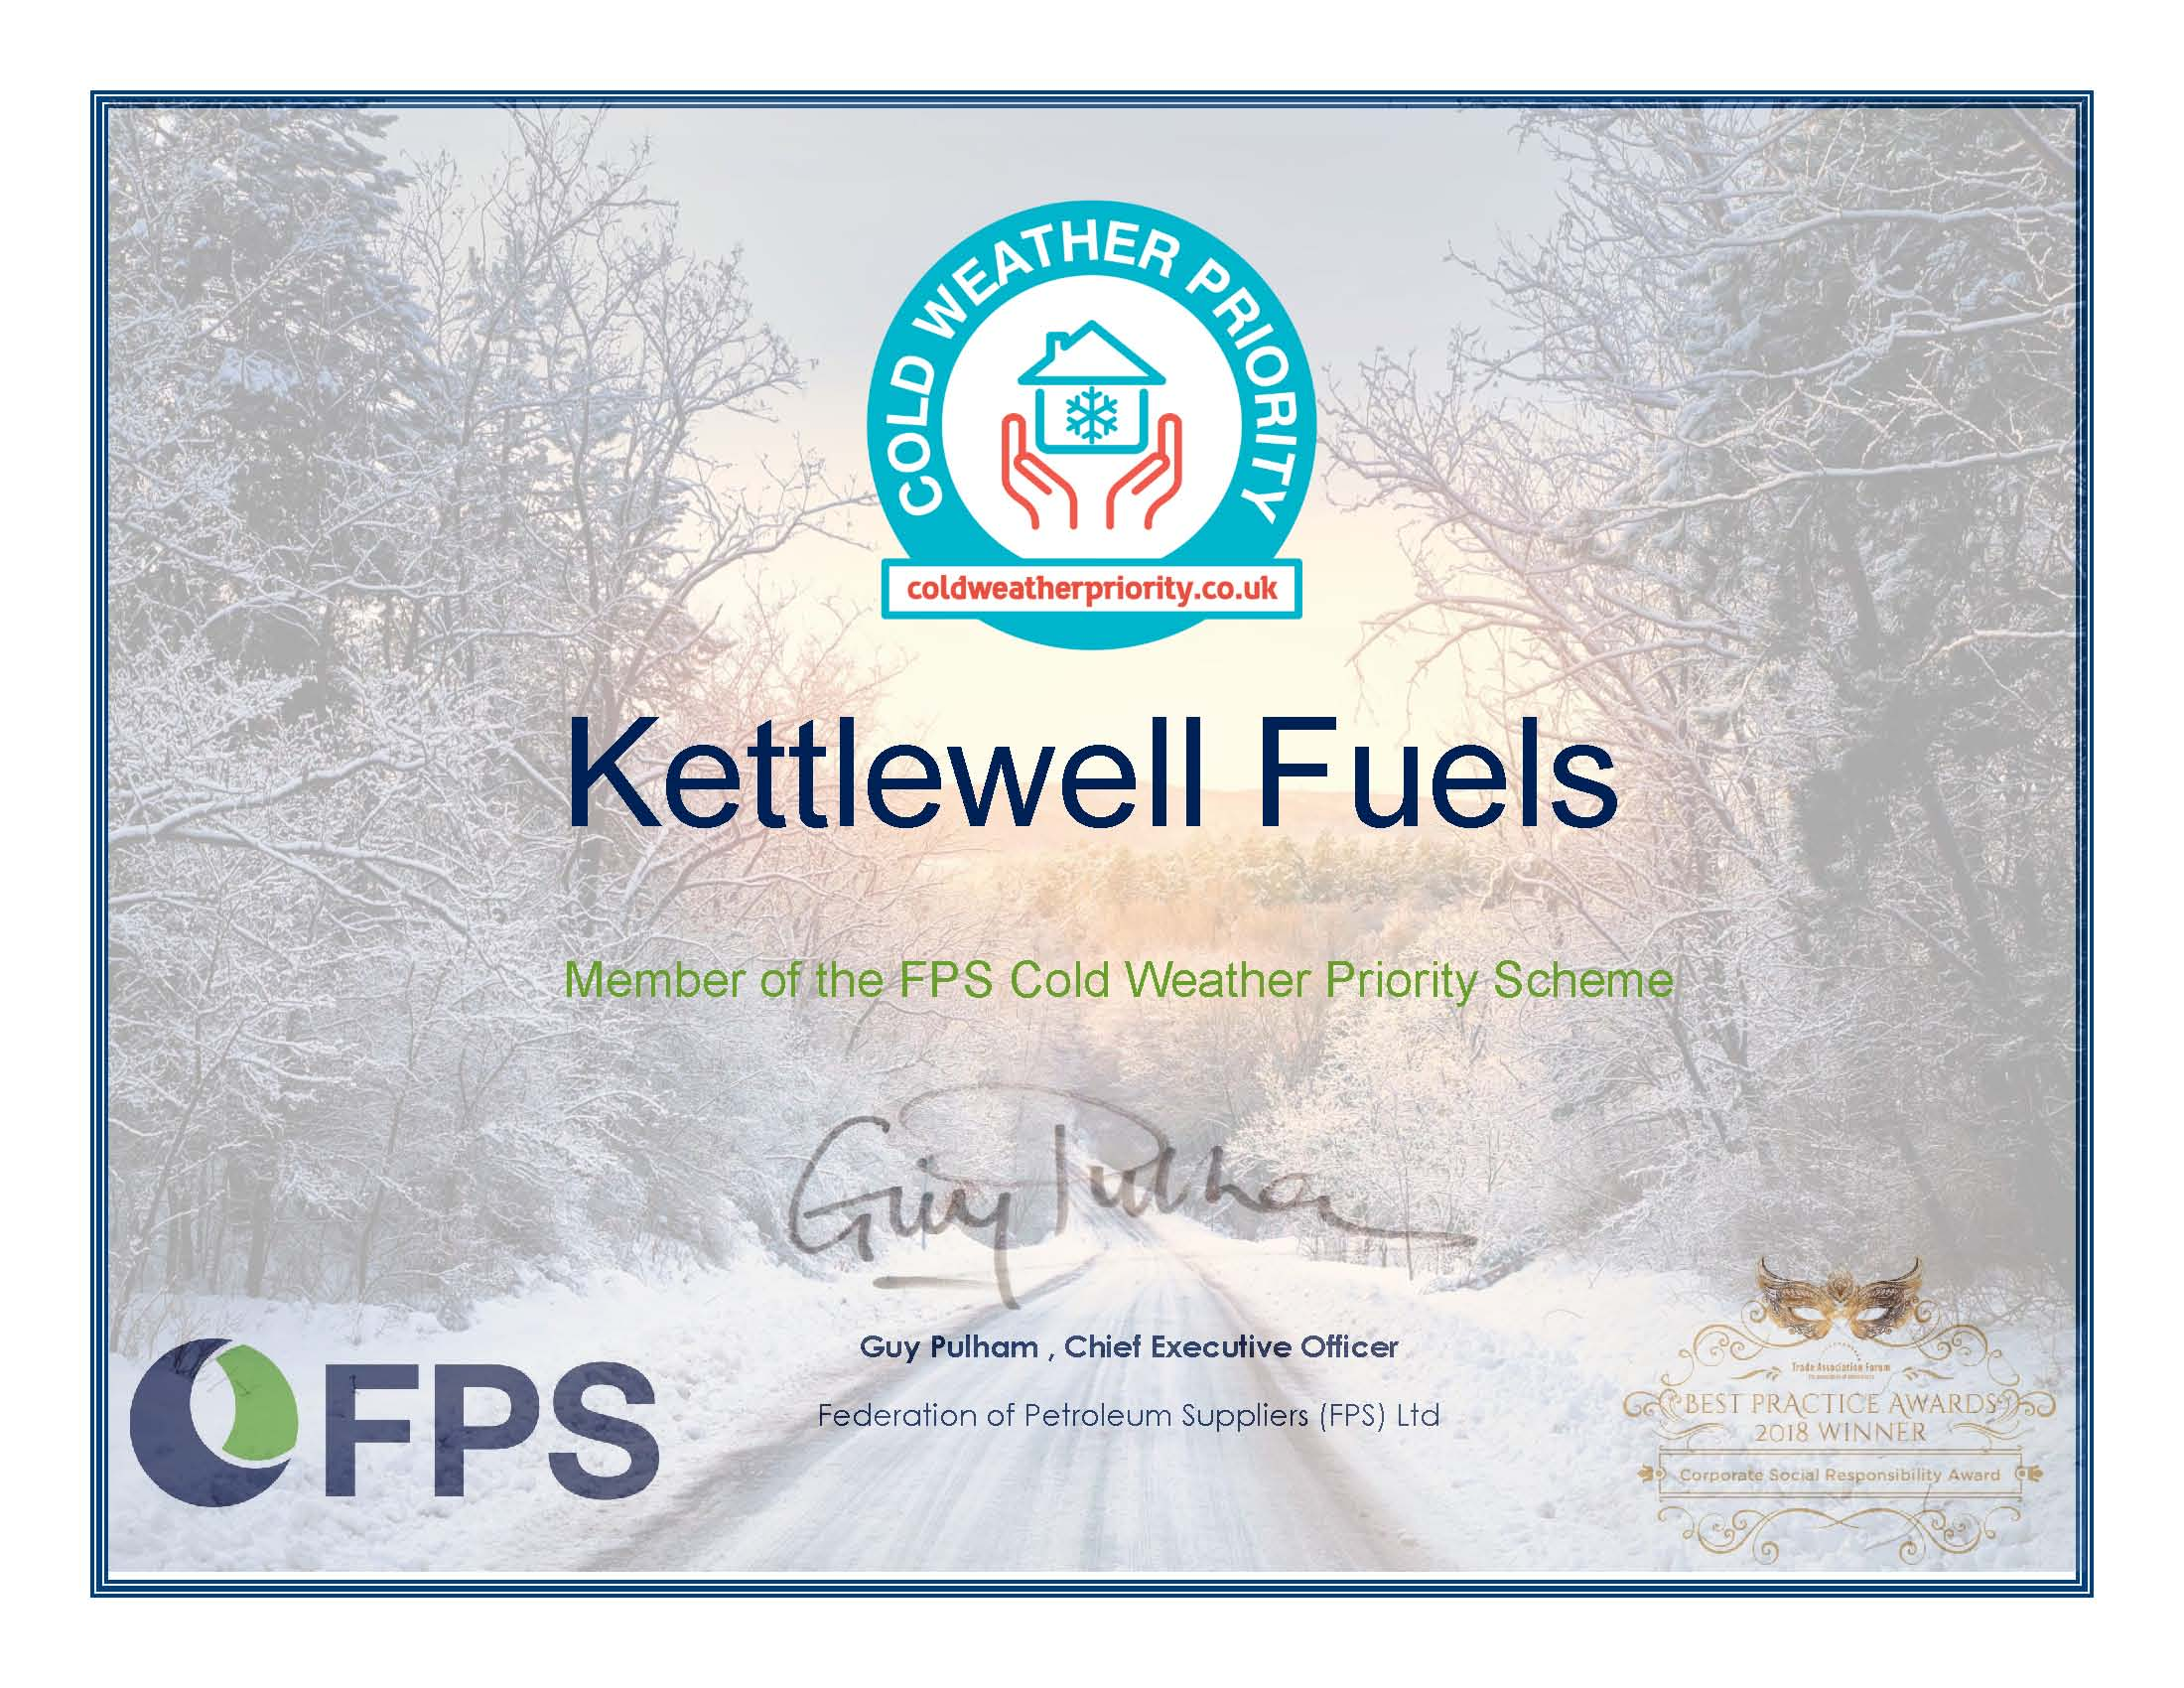 Kettlewell Fuels Cold Weather Priority Scheme